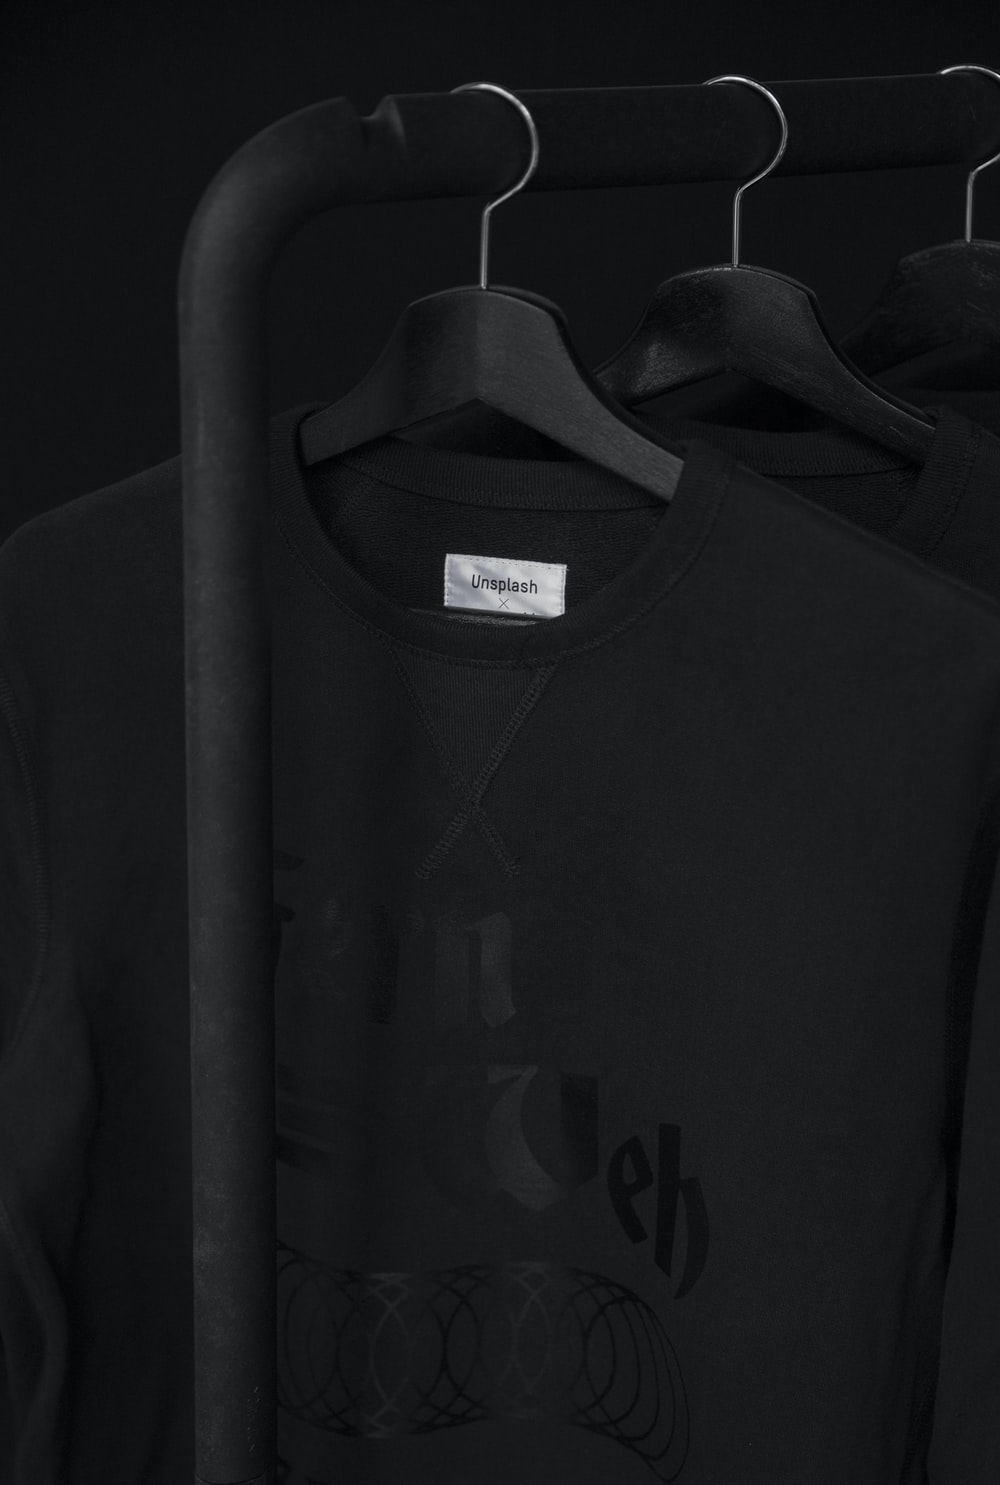 台北團體服製作  black crew-neck t-shirt on clothes hanger